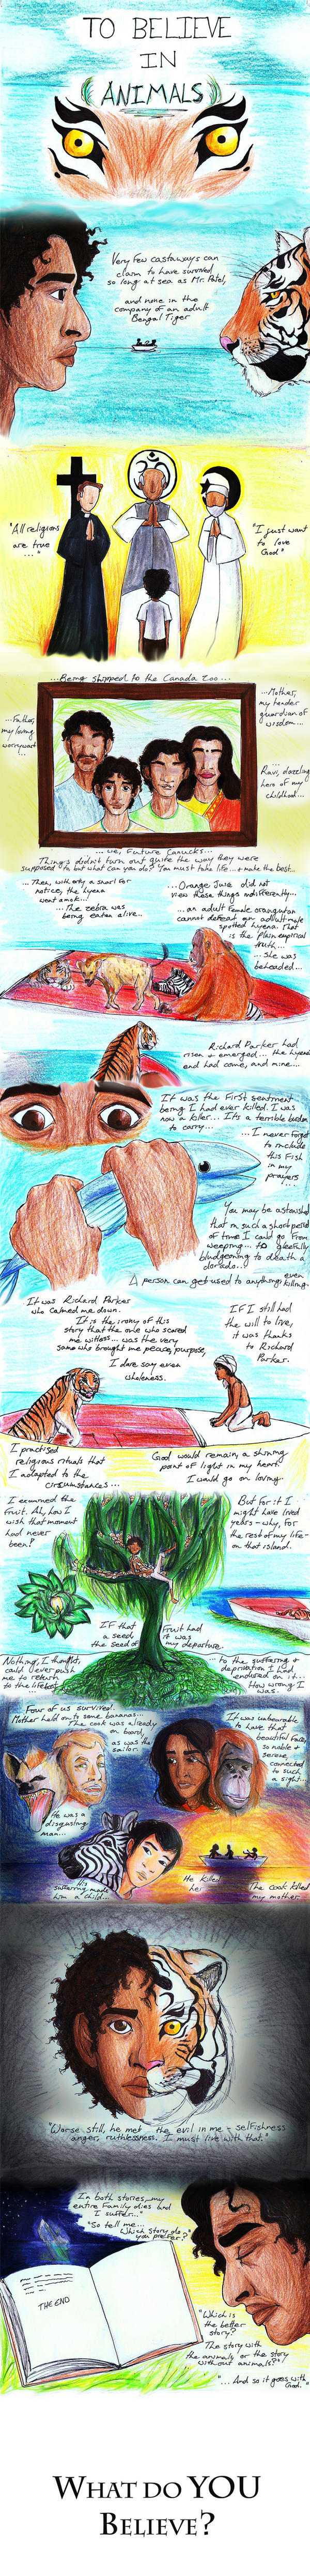 the fictitious story of survival at sea with richard parker in life of pi a novel by yann martel Pi's survival can be put down to one simple thing, his trust in god discuss canadian author yann martel portrays pi as such a strong-minded human being in his novel 'life of pi', the story shows that pi's hunger to survive gets him through the whole ordeal of being stranded at sea.